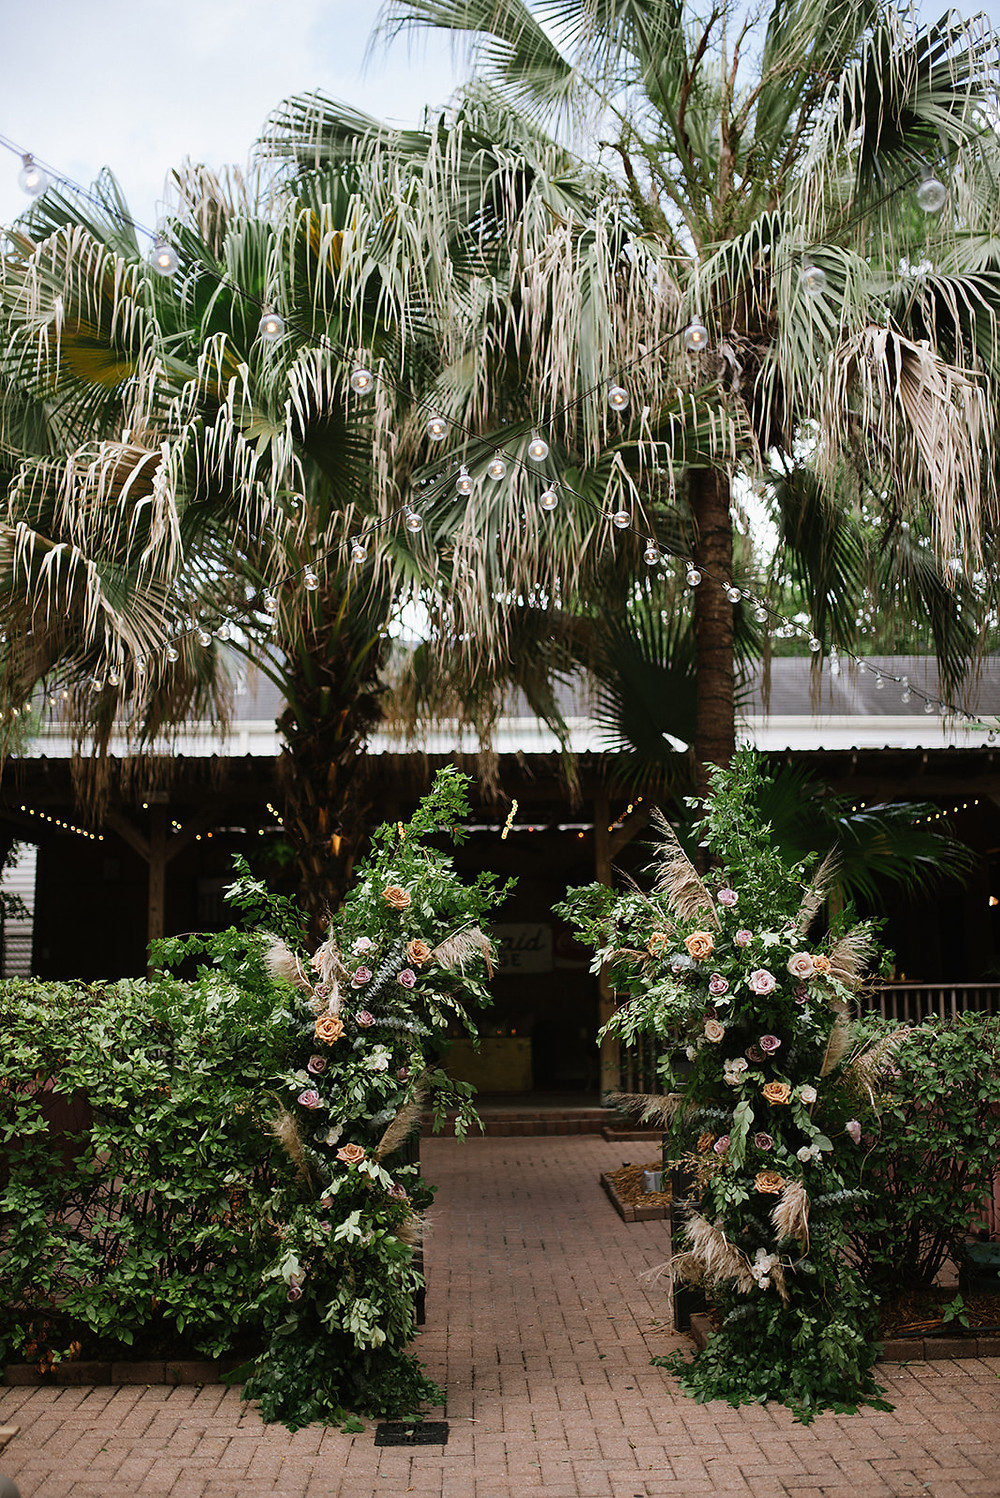 Lindsey & Alex | New Orleans Wedding with Lauren Carroll Photography at Rusty Nail and Lovegood Wedding & Event Rentals / Vintage Rentals, Garden Bisrto Chairs, Ceremony, Reception at Famous New Orleans Bar, Lounge Space, Highboys